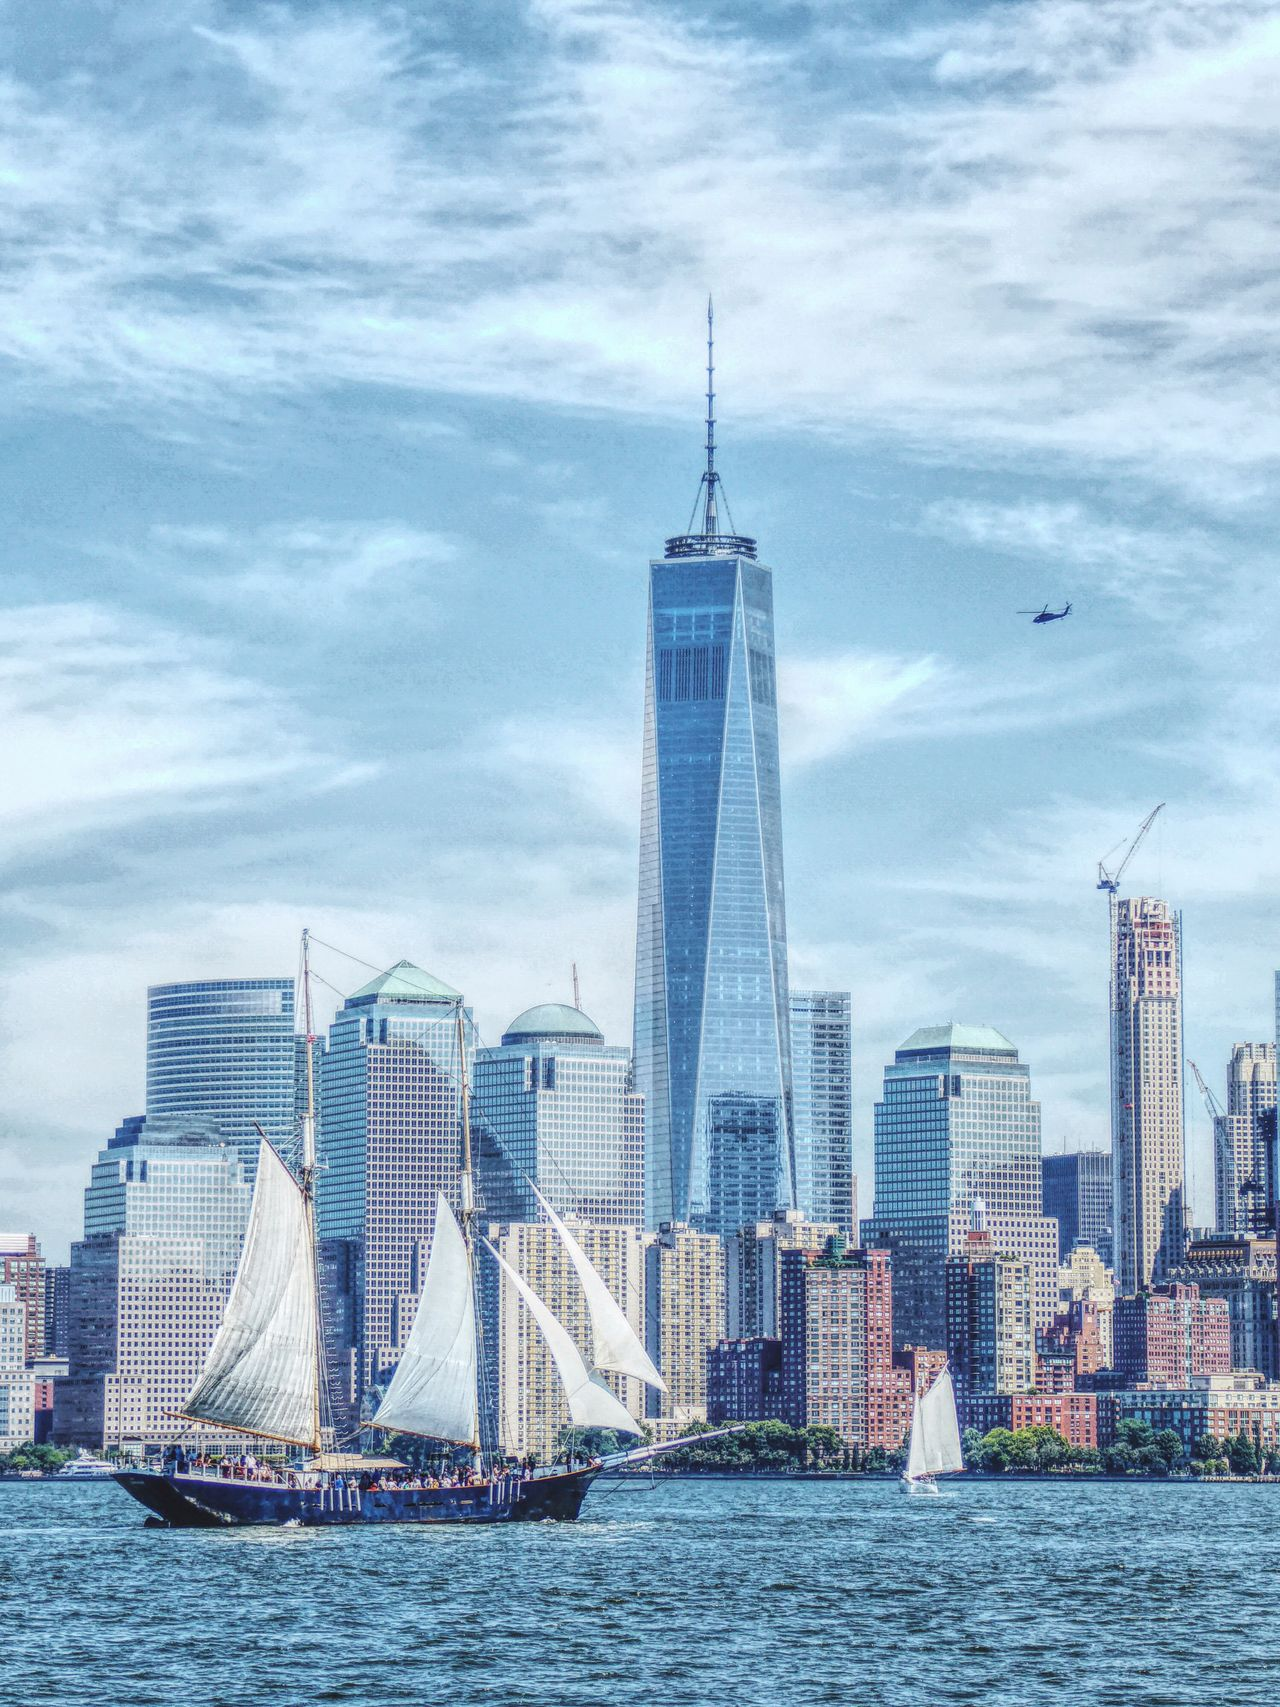 New Filters New York City New York Skyline  Skyscraper Architecture Built Structure Waterfront Water City Tall - High Tower Building Exterior Modern Office Building Travel Destinations Sea Cityscape River Capital Cities  Financial District  International Landmark Tourism Urban Skyline Sailboat Sailing Ship